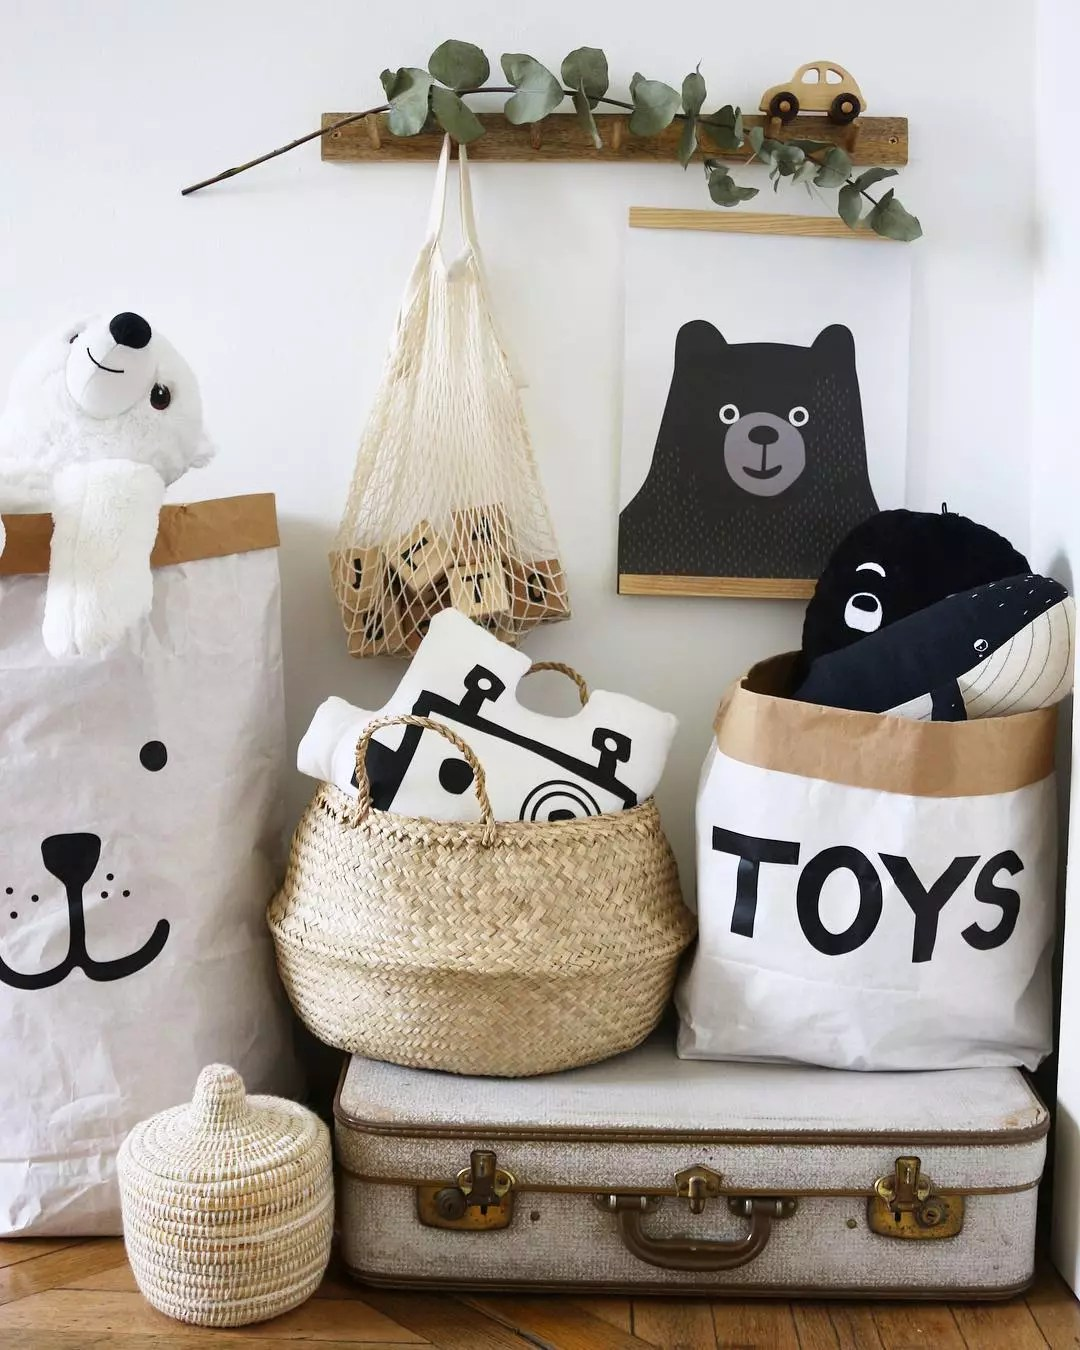 Totes with Stuffed Animals and Other Toys. Photo by Instagram user @stylepoetry